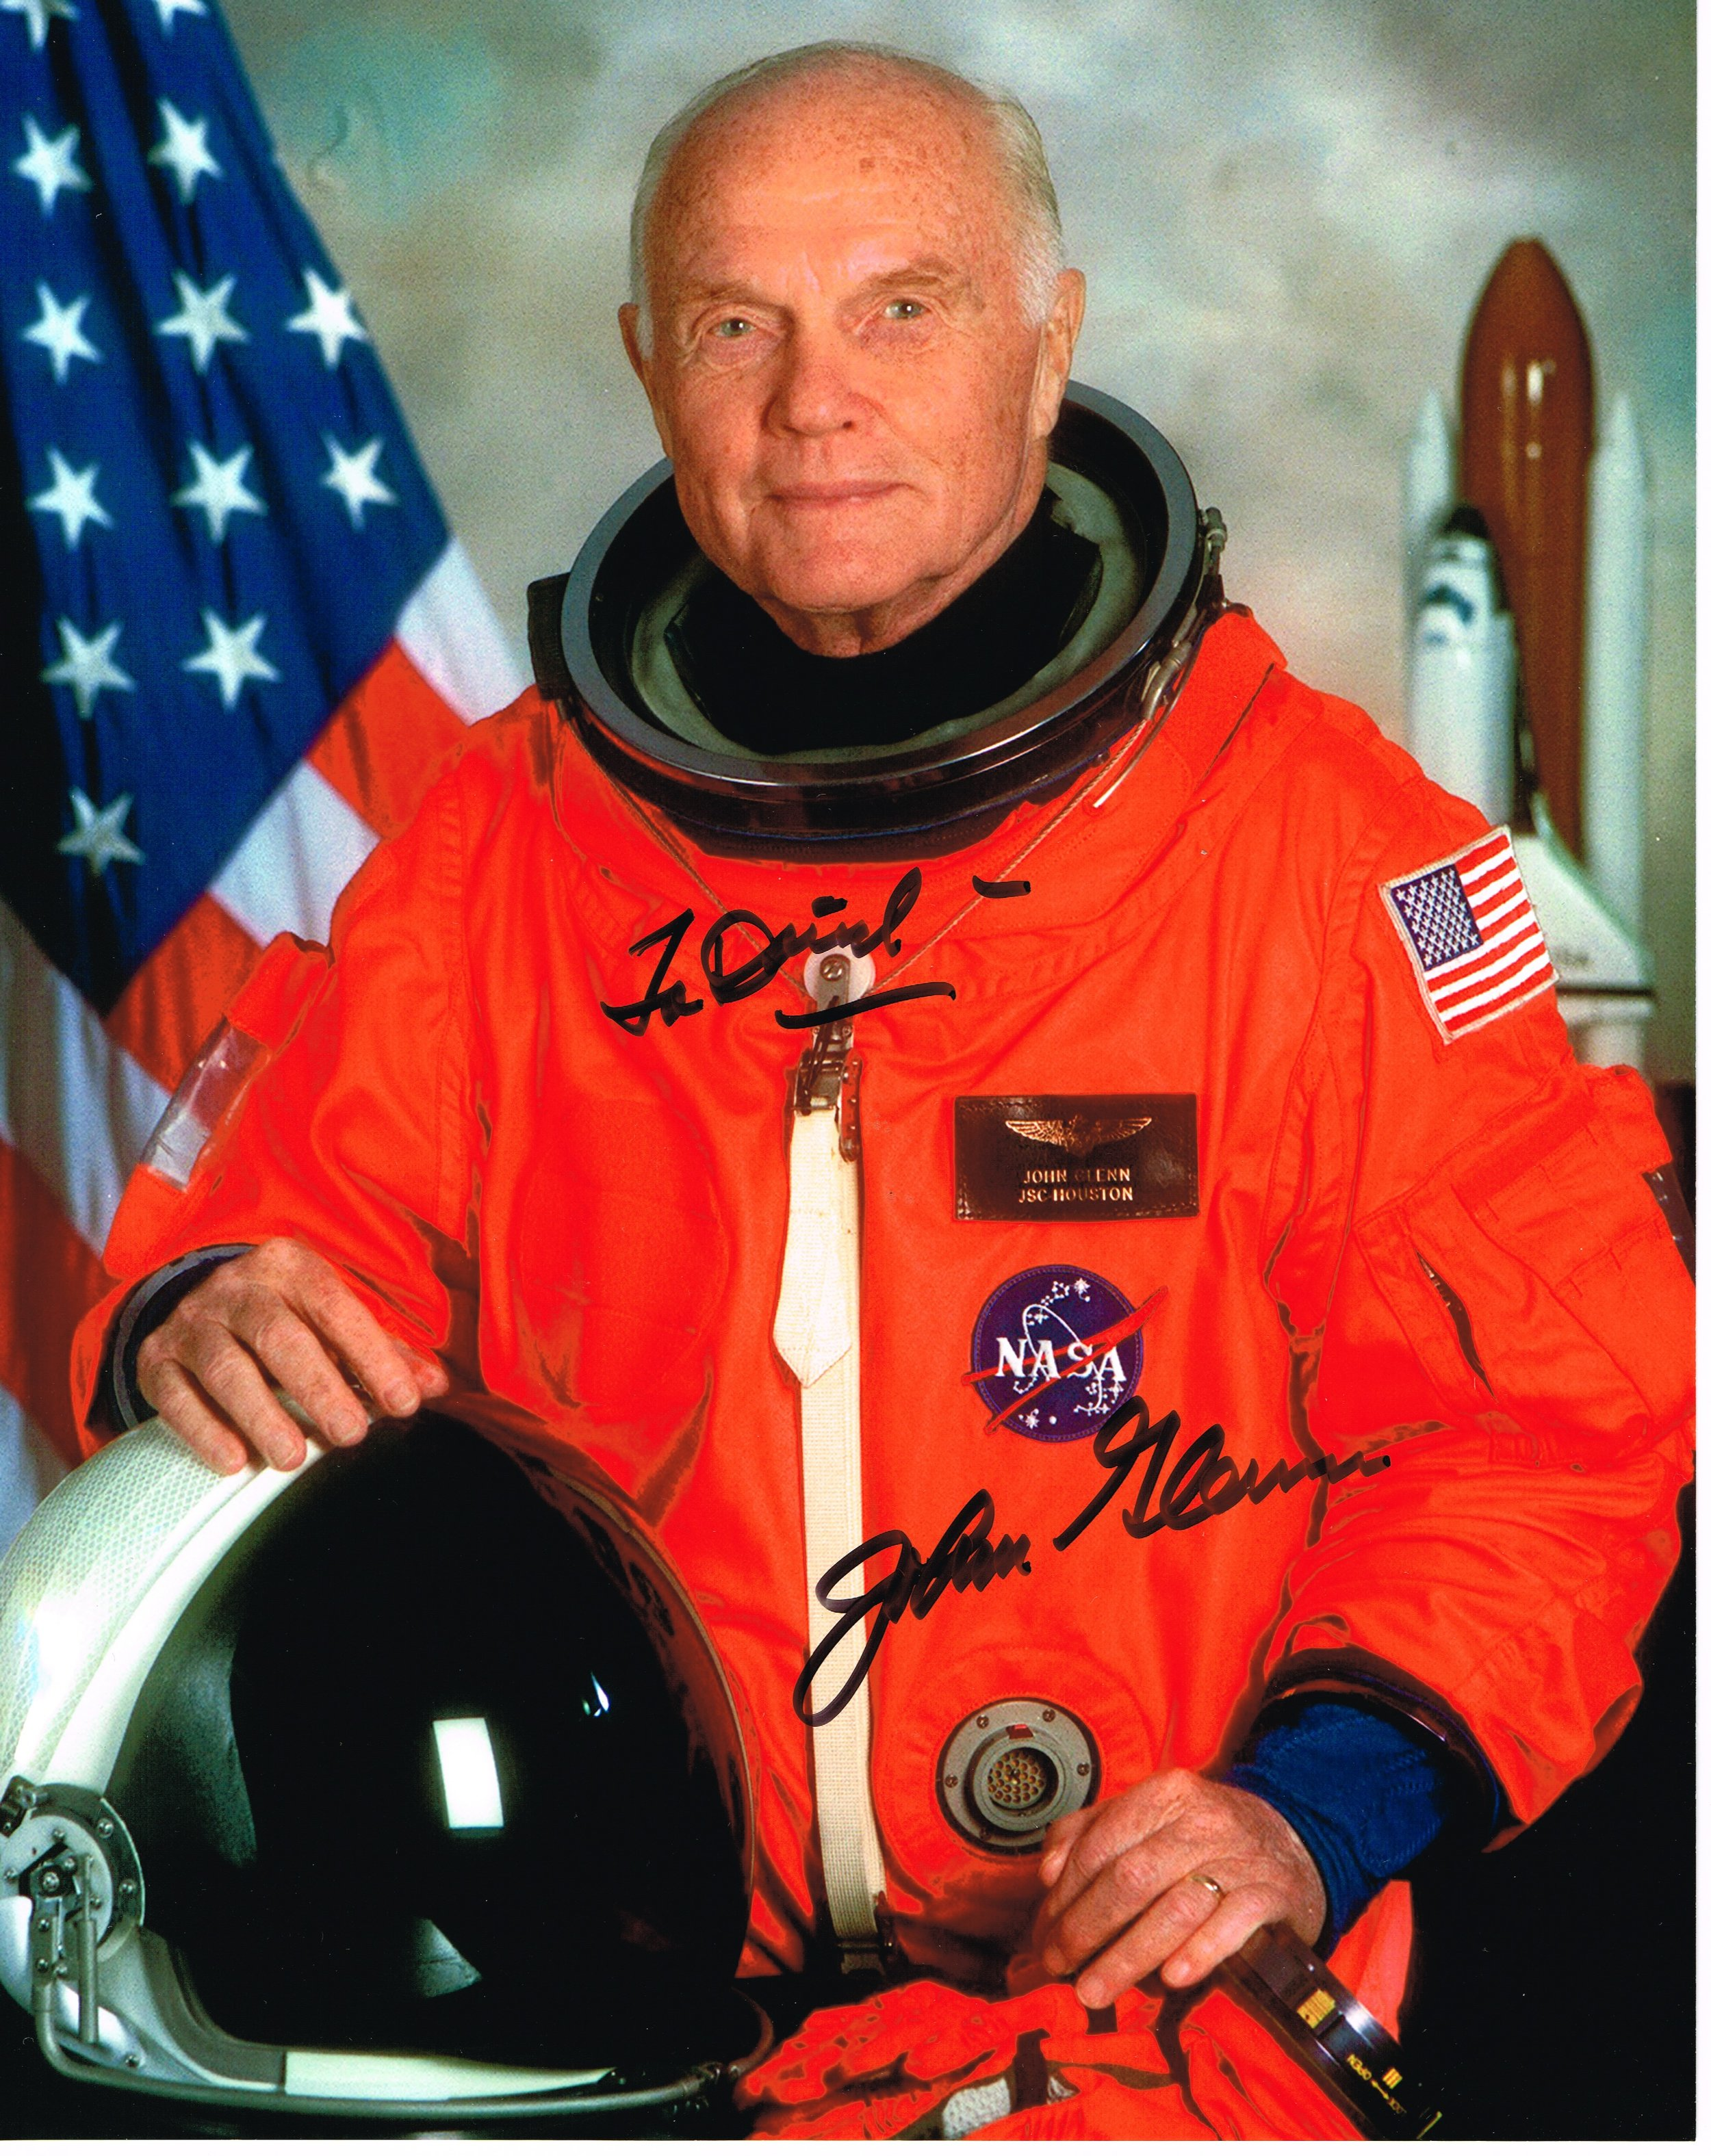 Senator and Astronaut John Glenn is oldest man in space at age 77